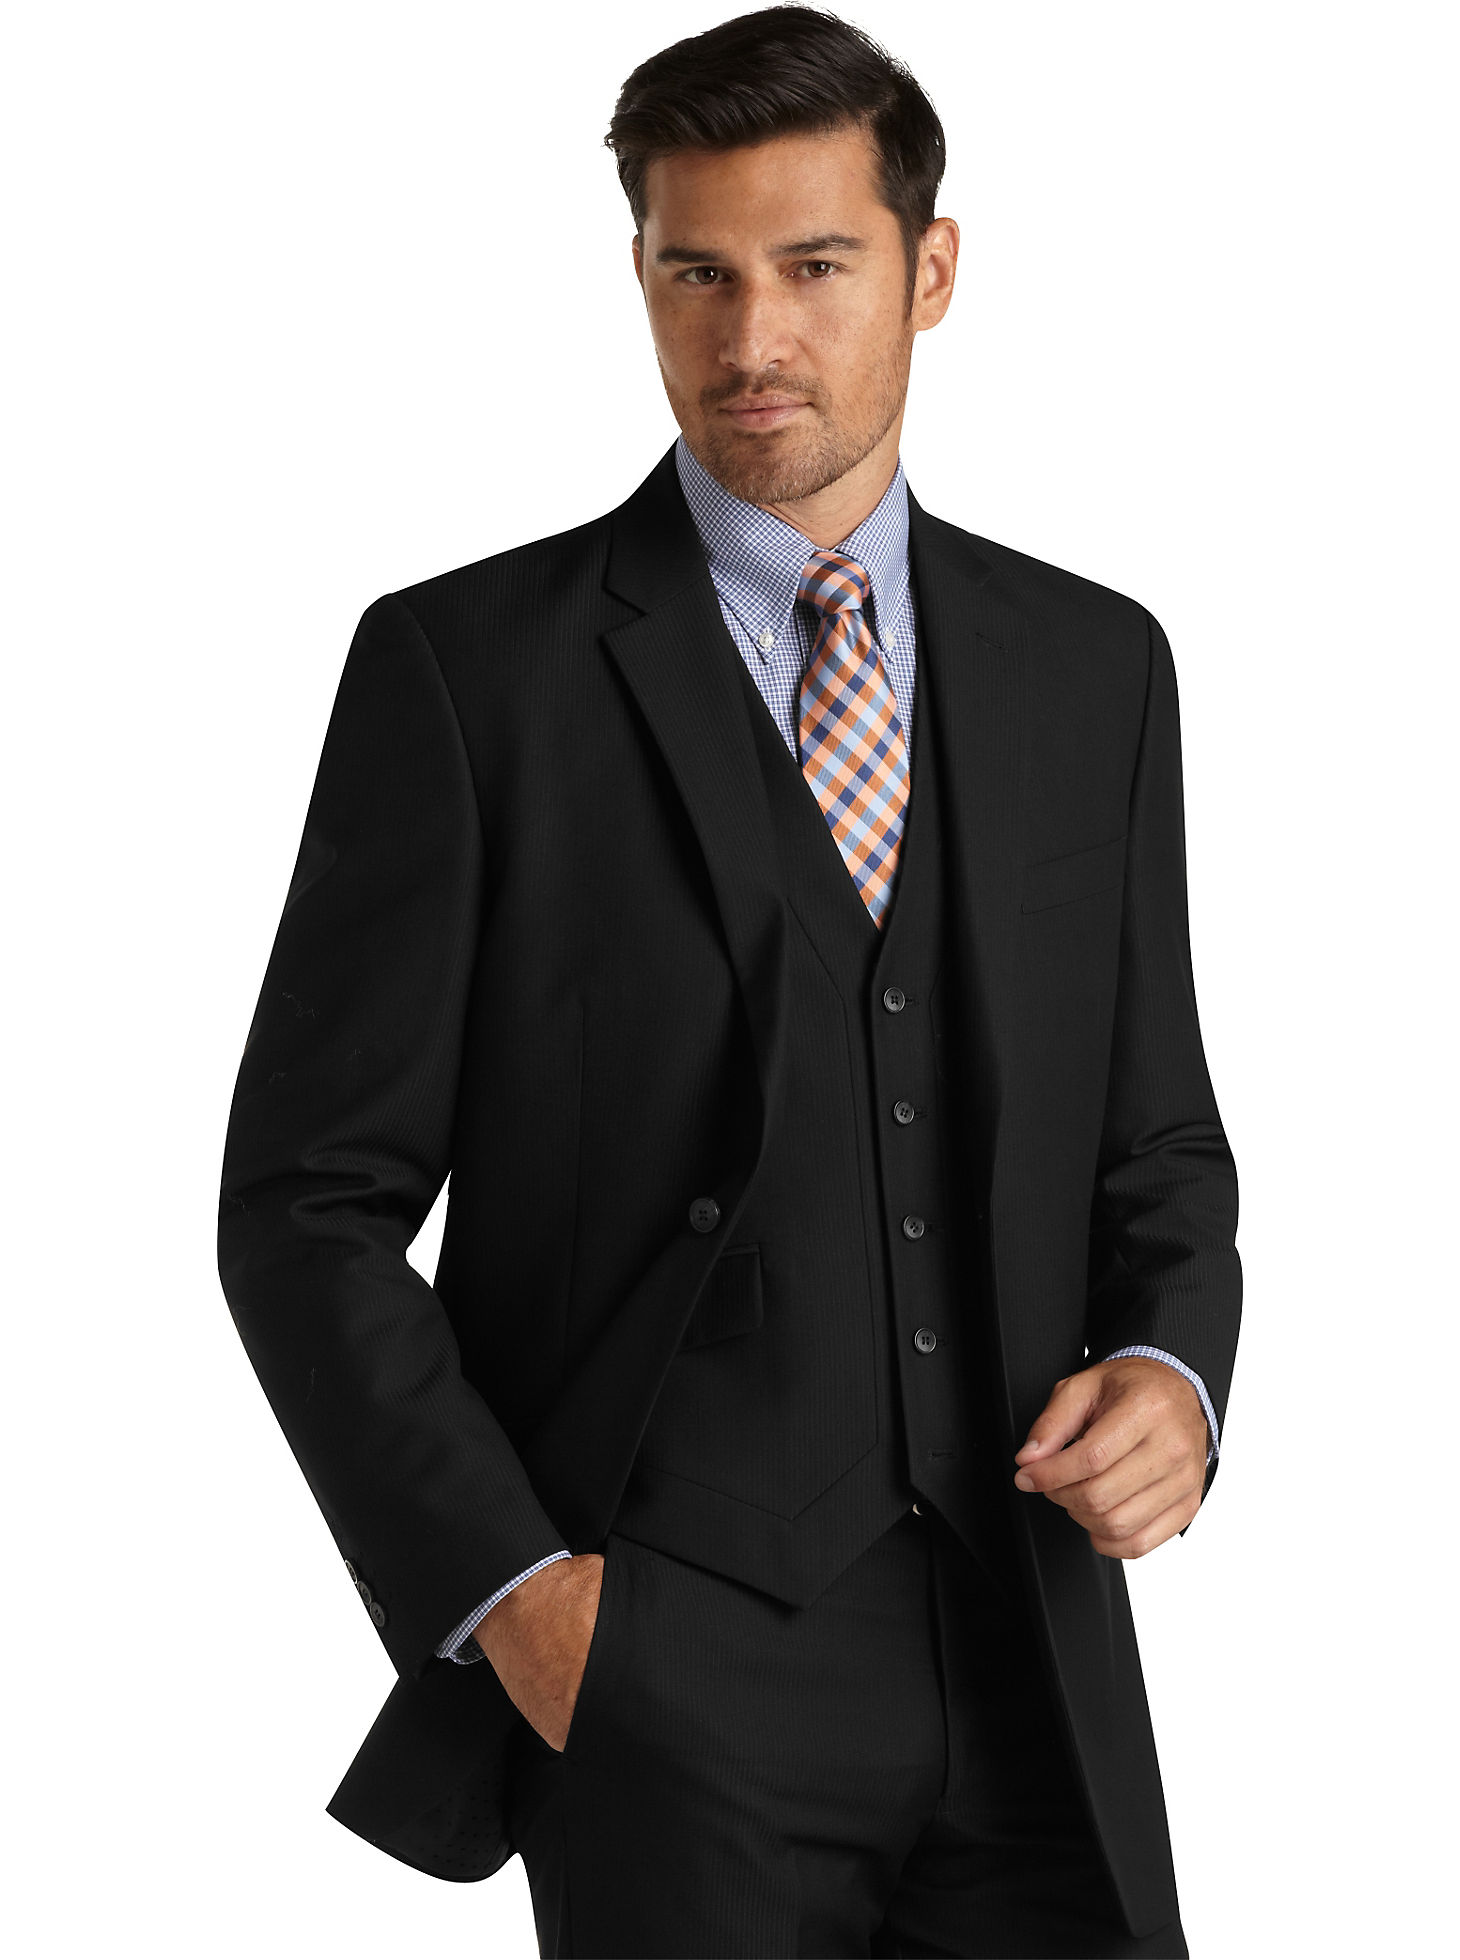 Buy 1 Suit, Suit Separates Package, or Sport Coat, and get 1 Suit, Suit Separates Package, or Sport Coat FREE. Purchased item must be at regular price. Free item must of equal or lesser value. Suit Separates Package must include coat. Excludes custom suits.